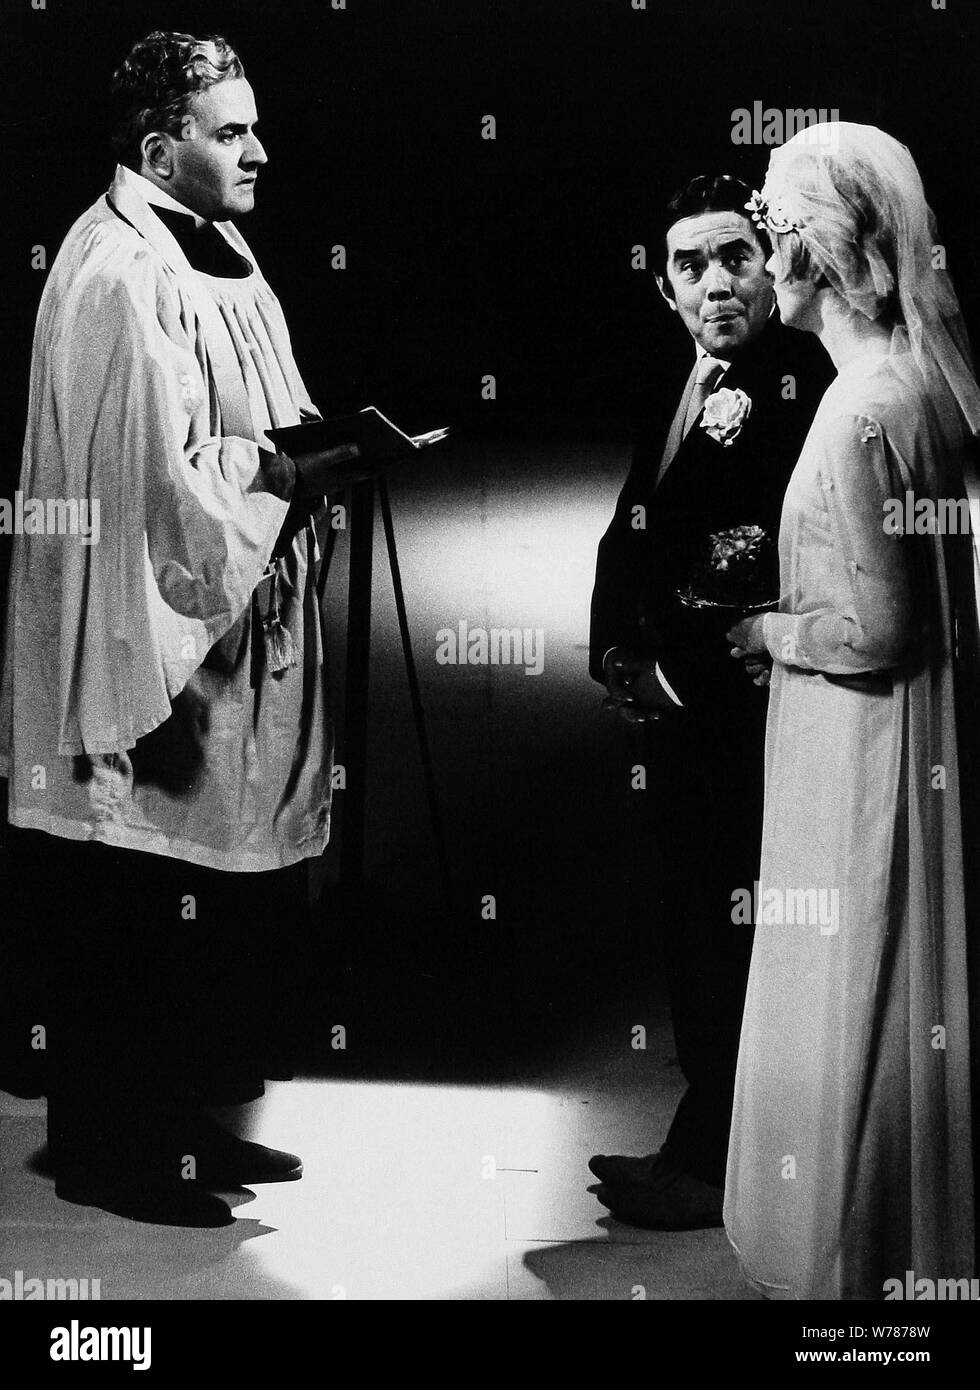 Ronnie Barker Ronnie Corbett Josephine Tewson The Two Ronnies 1971 Stock Photo Alamy From this week, she stars in louise page's play ' salonika' at the west yorkshire playhouse until 16 february. https www alamy com ronnie barker ronnie corbett josephine tewson the two ronnies 1971 image262639465 html